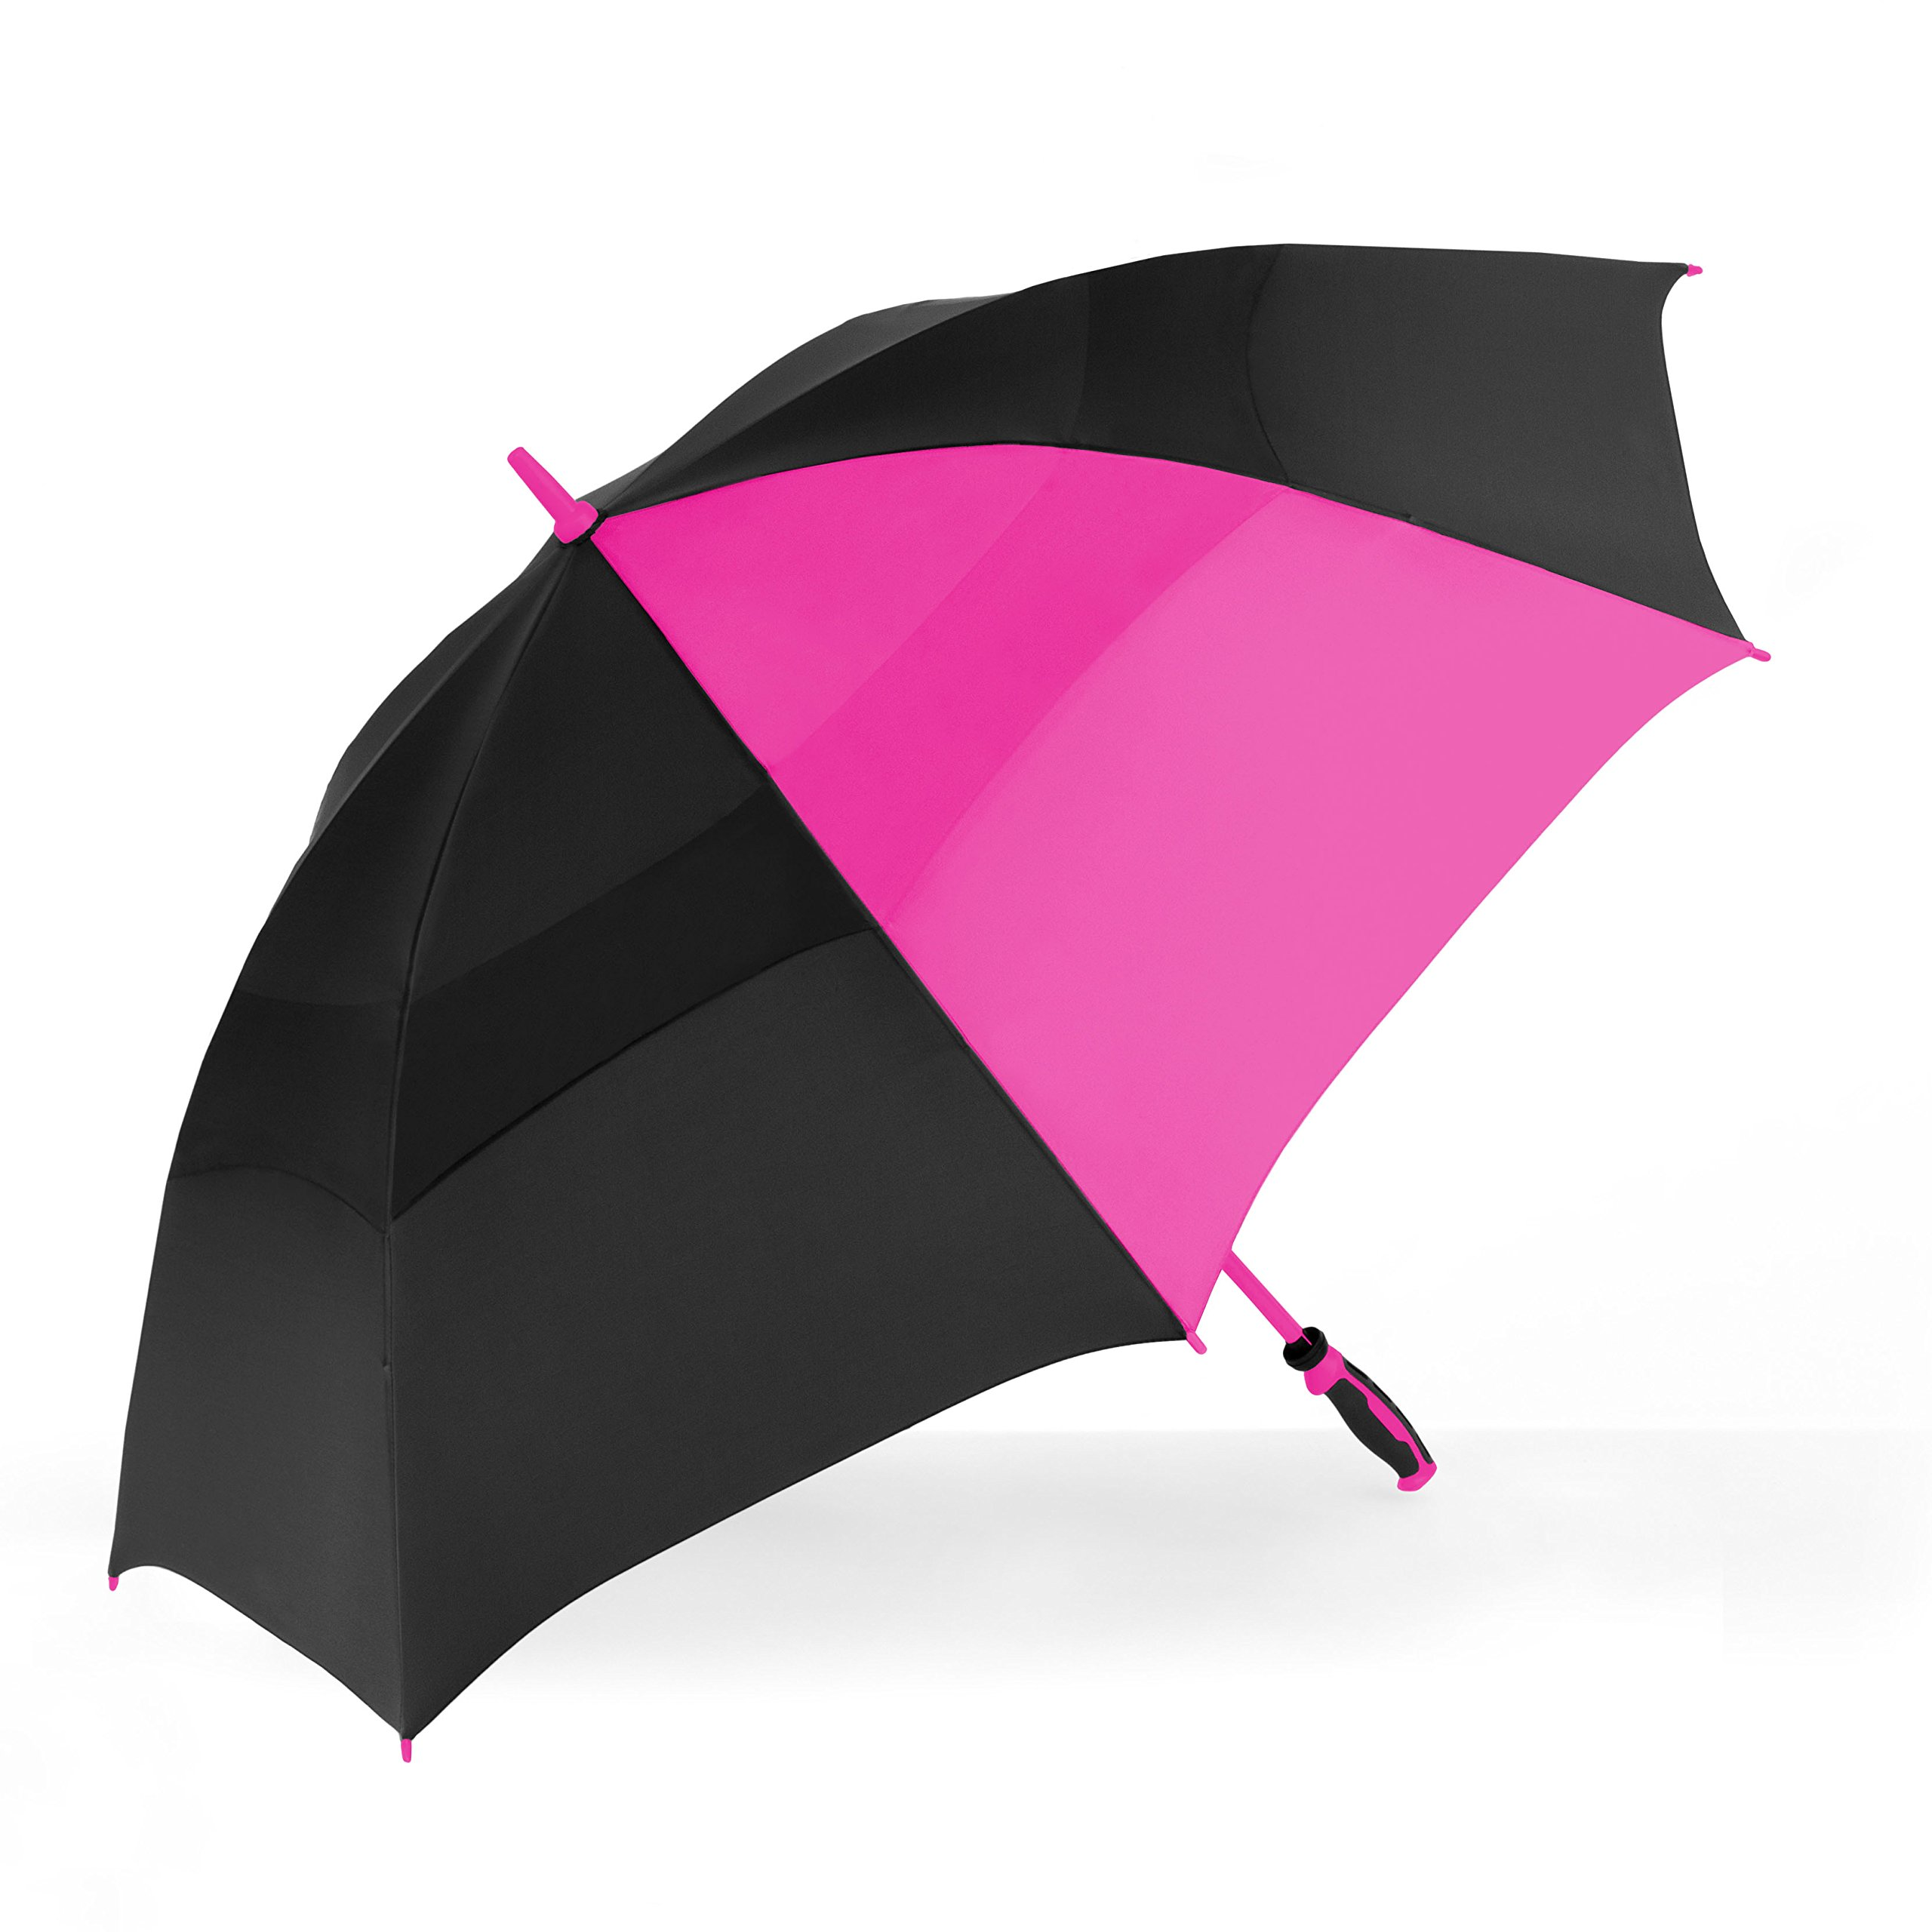 ShedRain® Windjammer Vented Color Pop Golf Umbrella: Black and Hot Pink